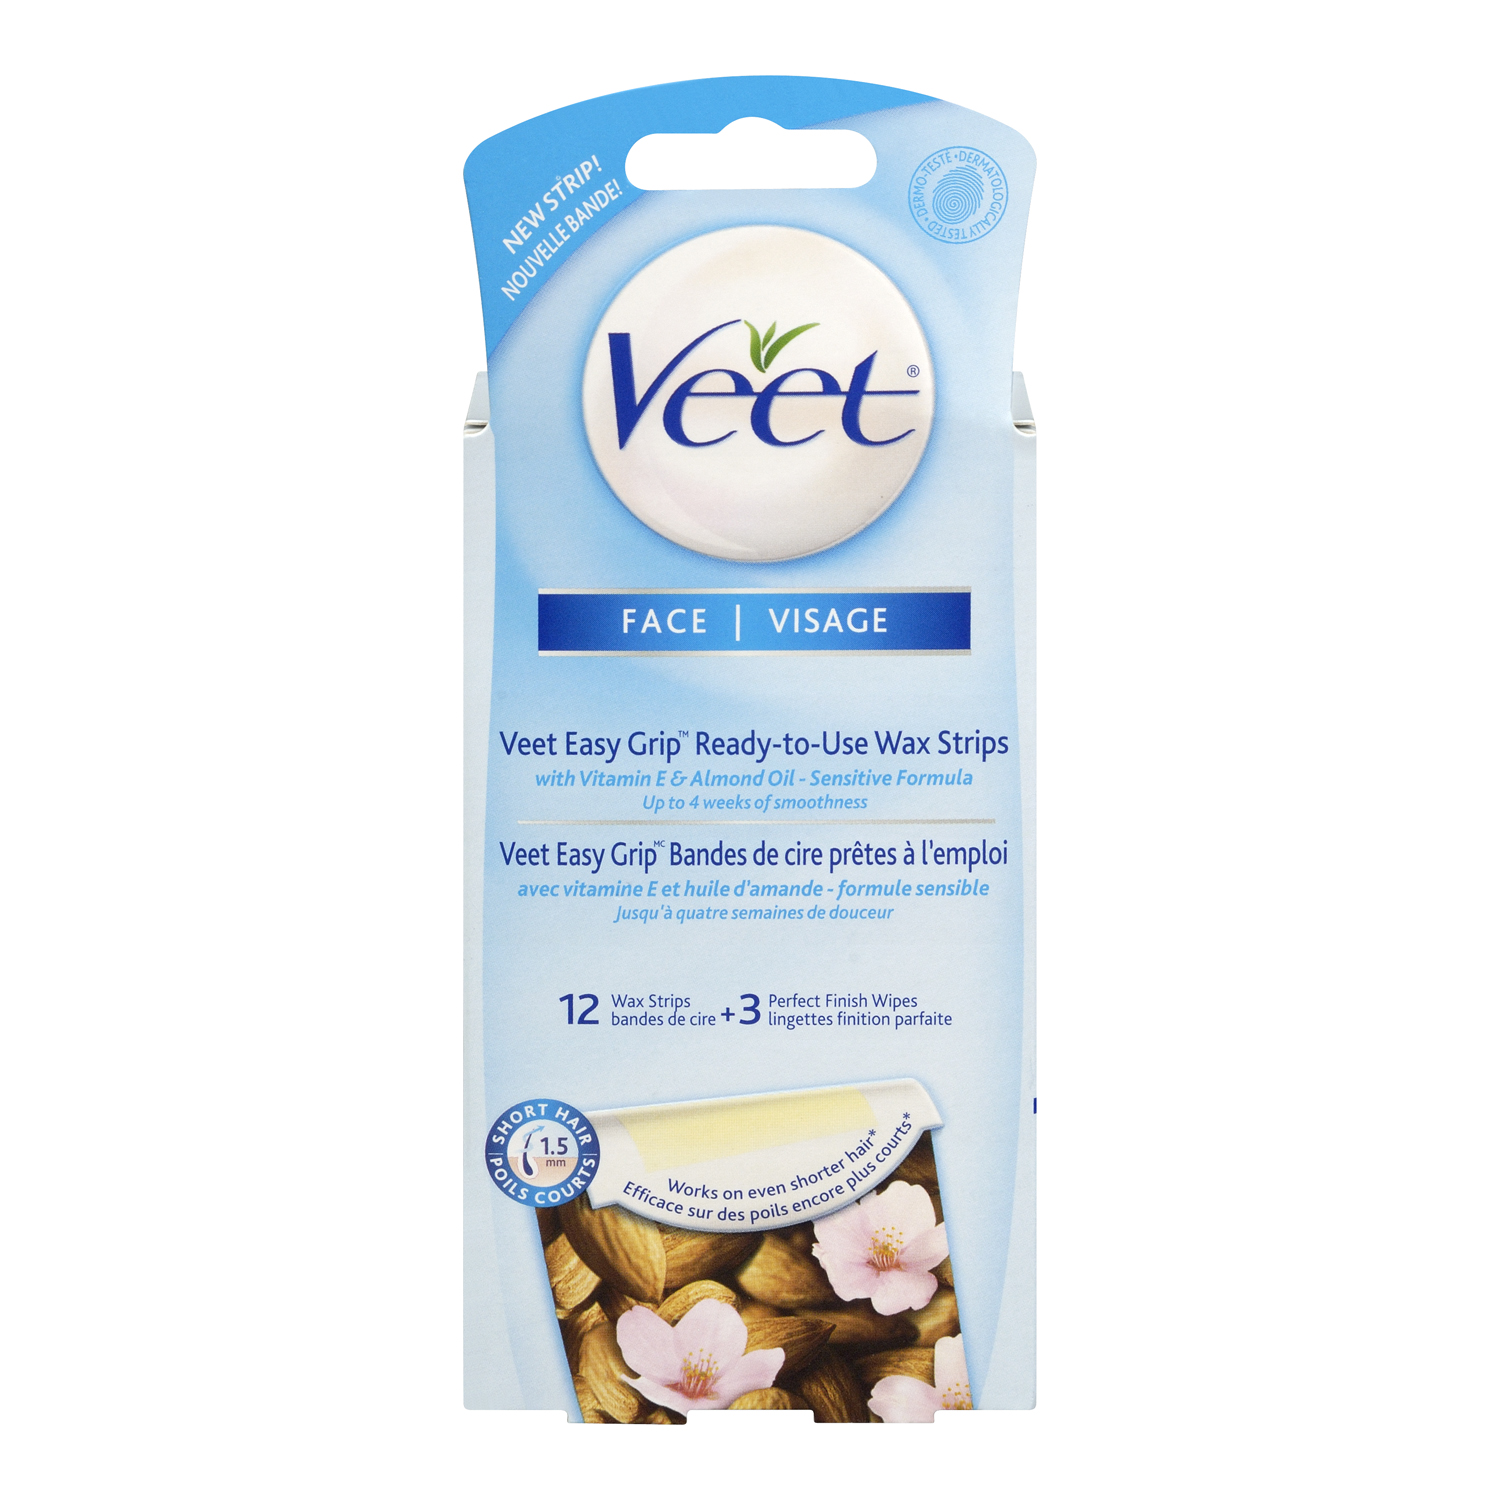 Veet Easy To Use Wax Strips For Face Reviews 2020